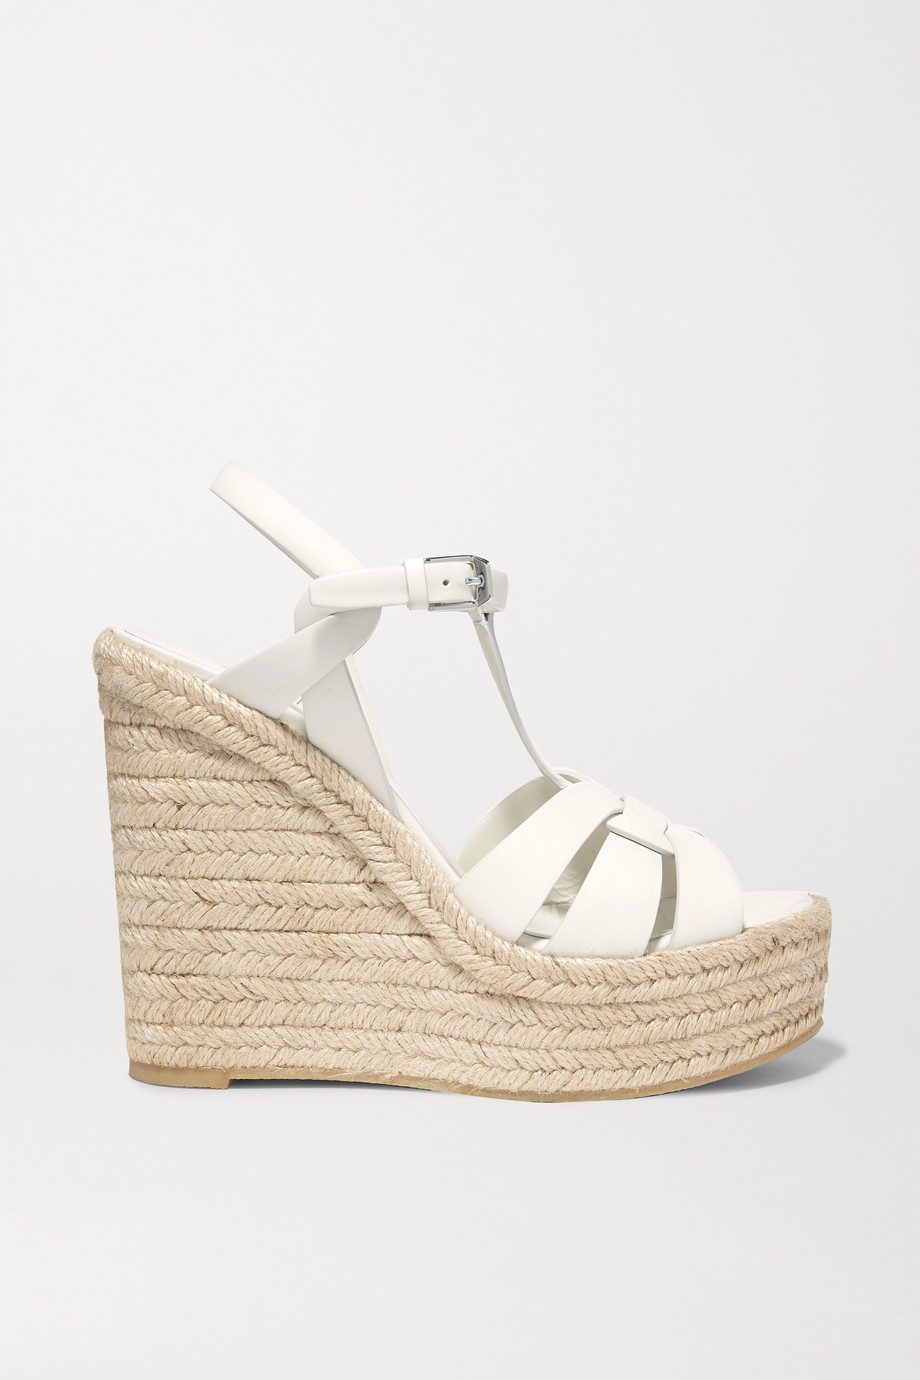 SAINT LAURENT Tribute Espadrille-Wedges aus Leder in Flechtoptik